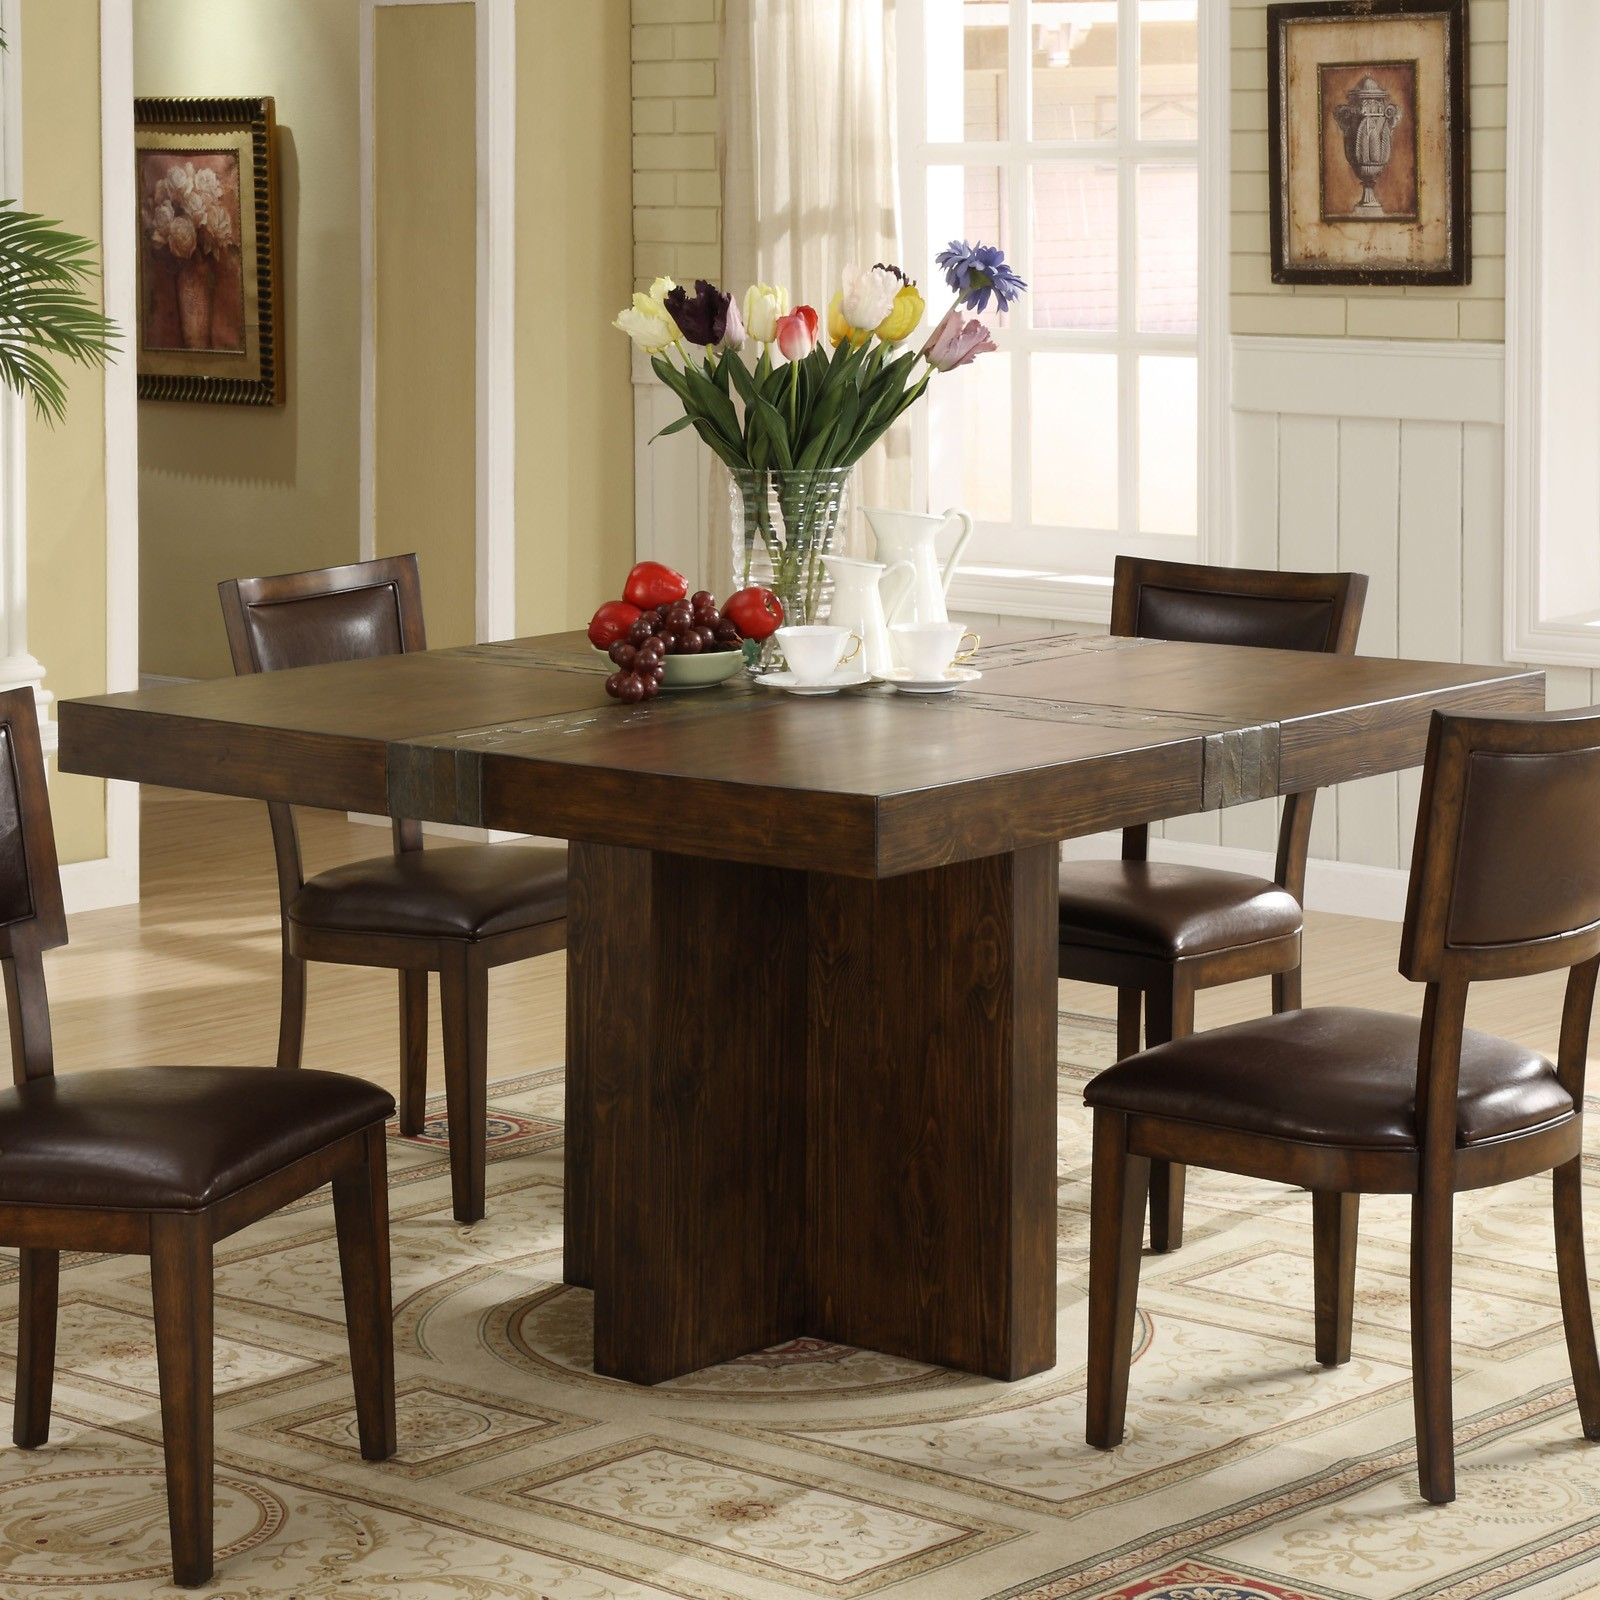 Superieur Square Dining Room Table Seats 8 2